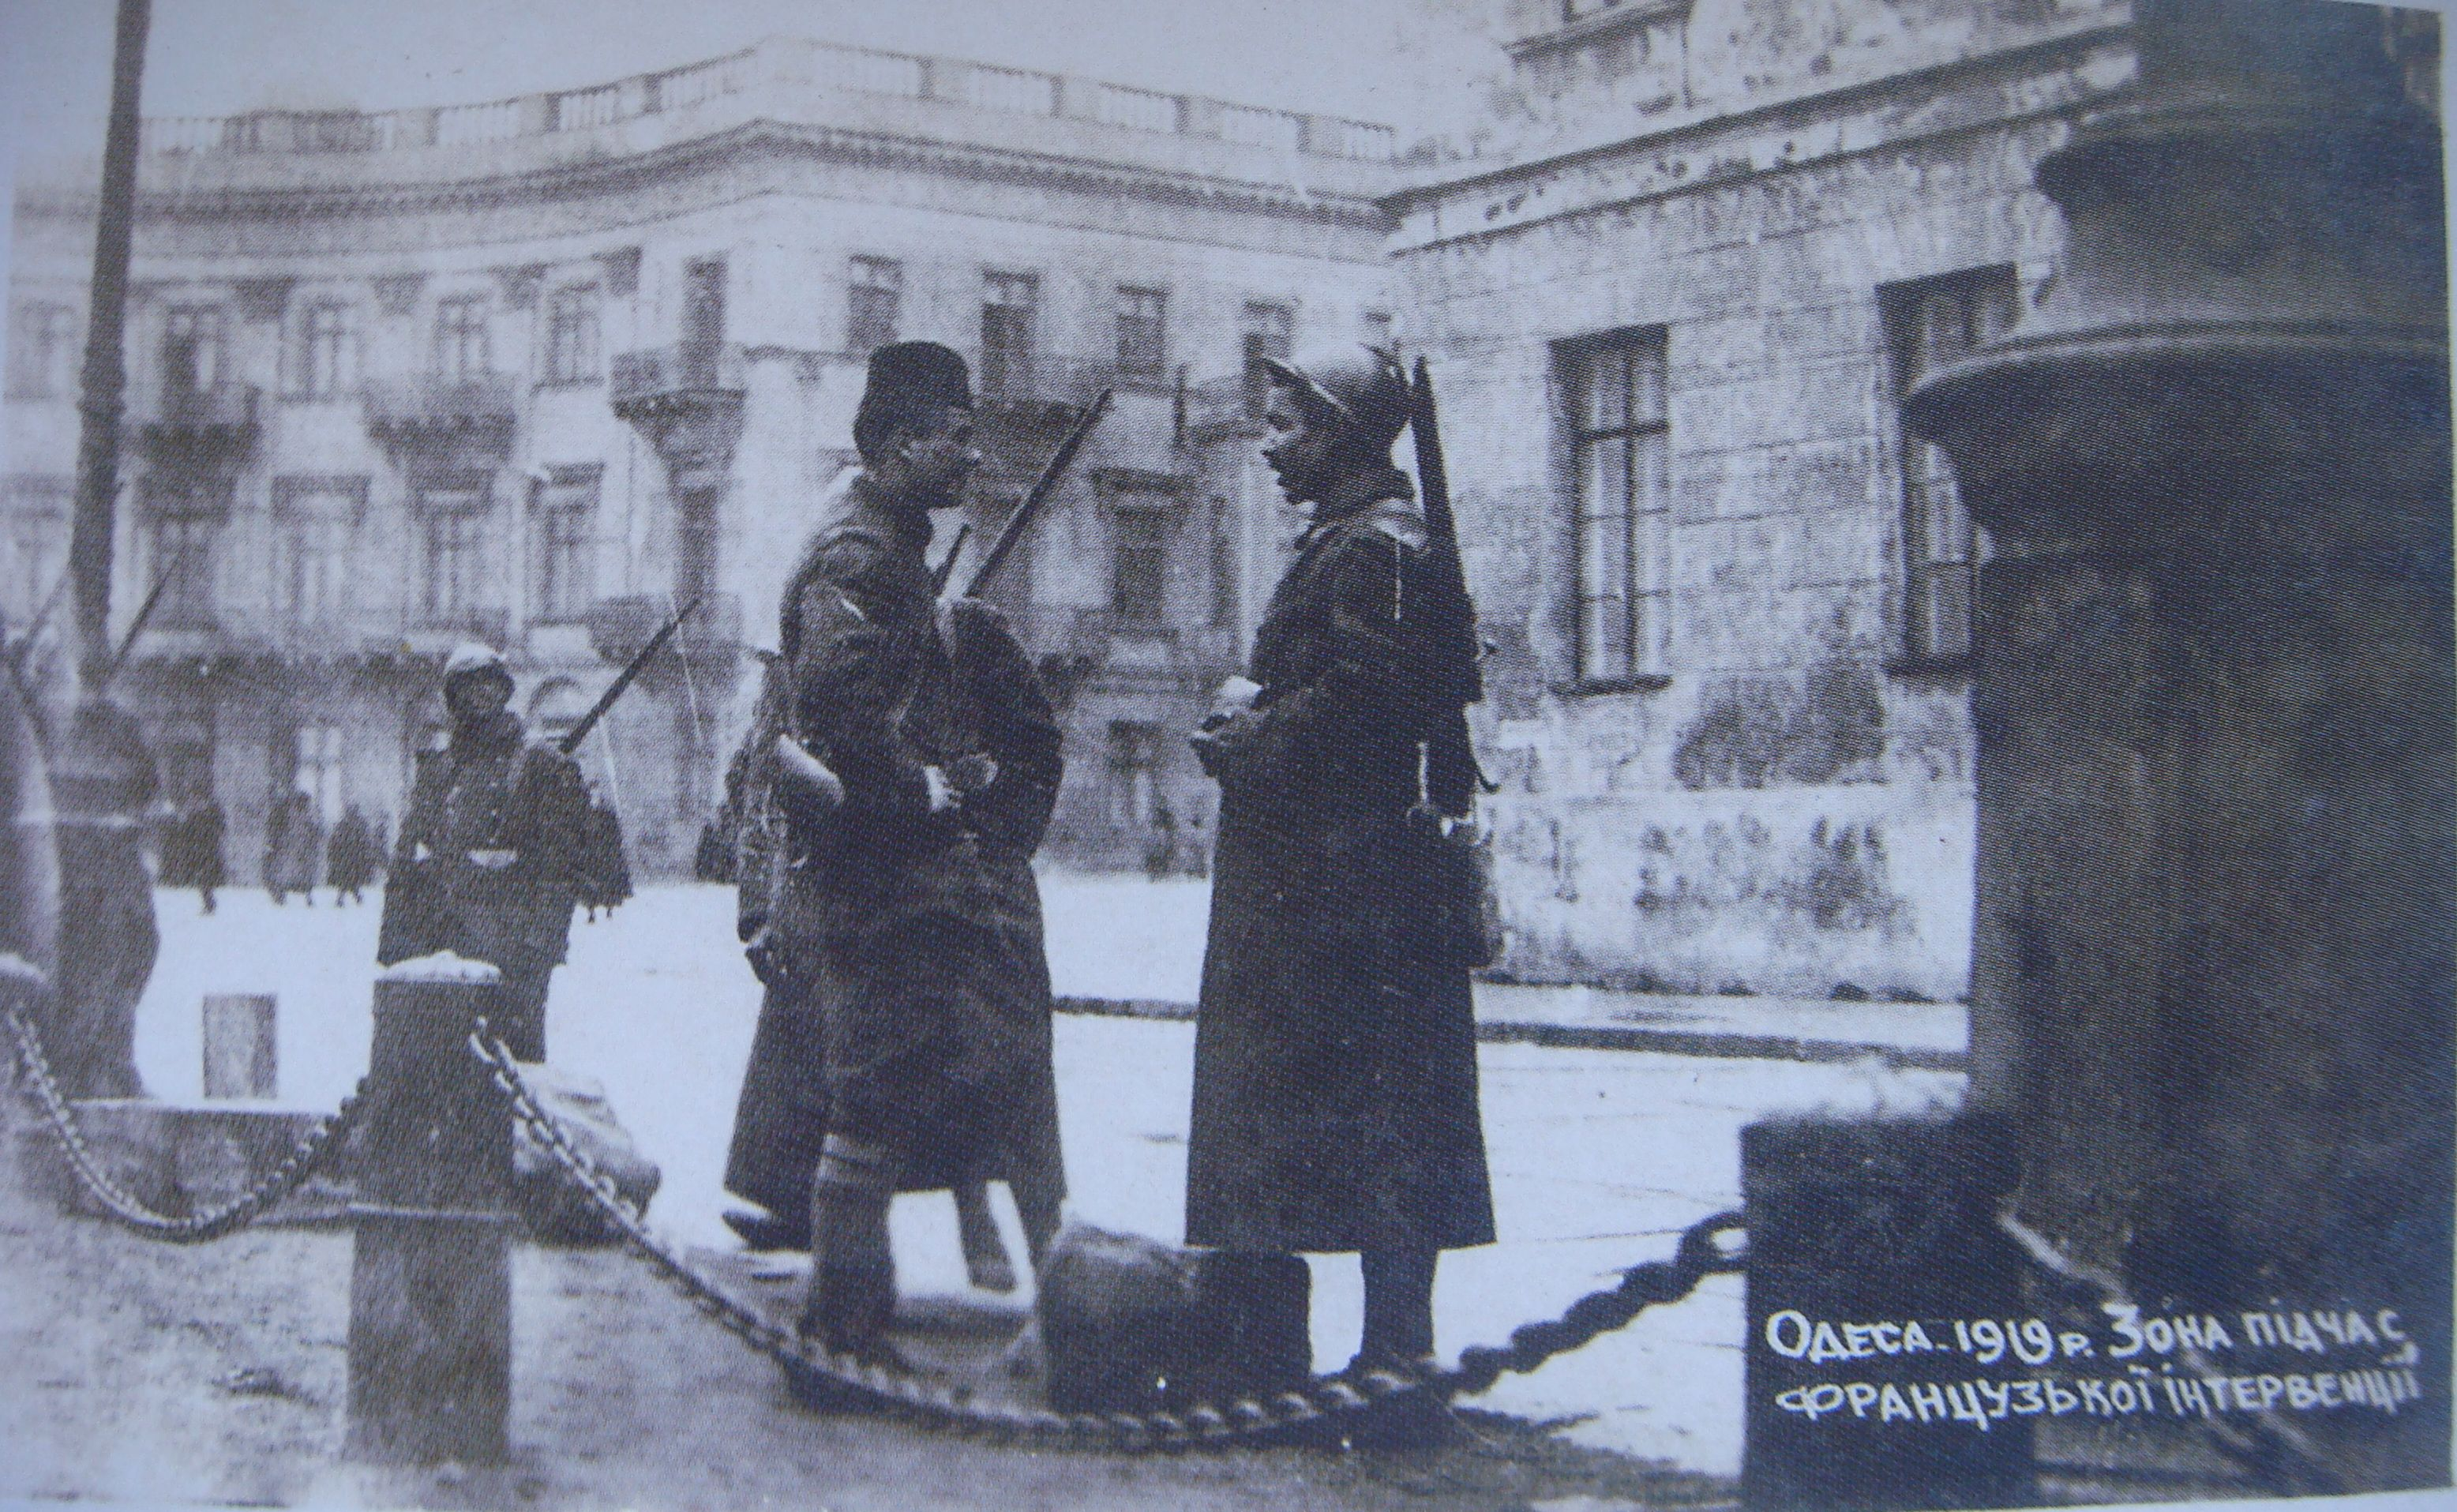 Odessa French intervention 1919.jpg